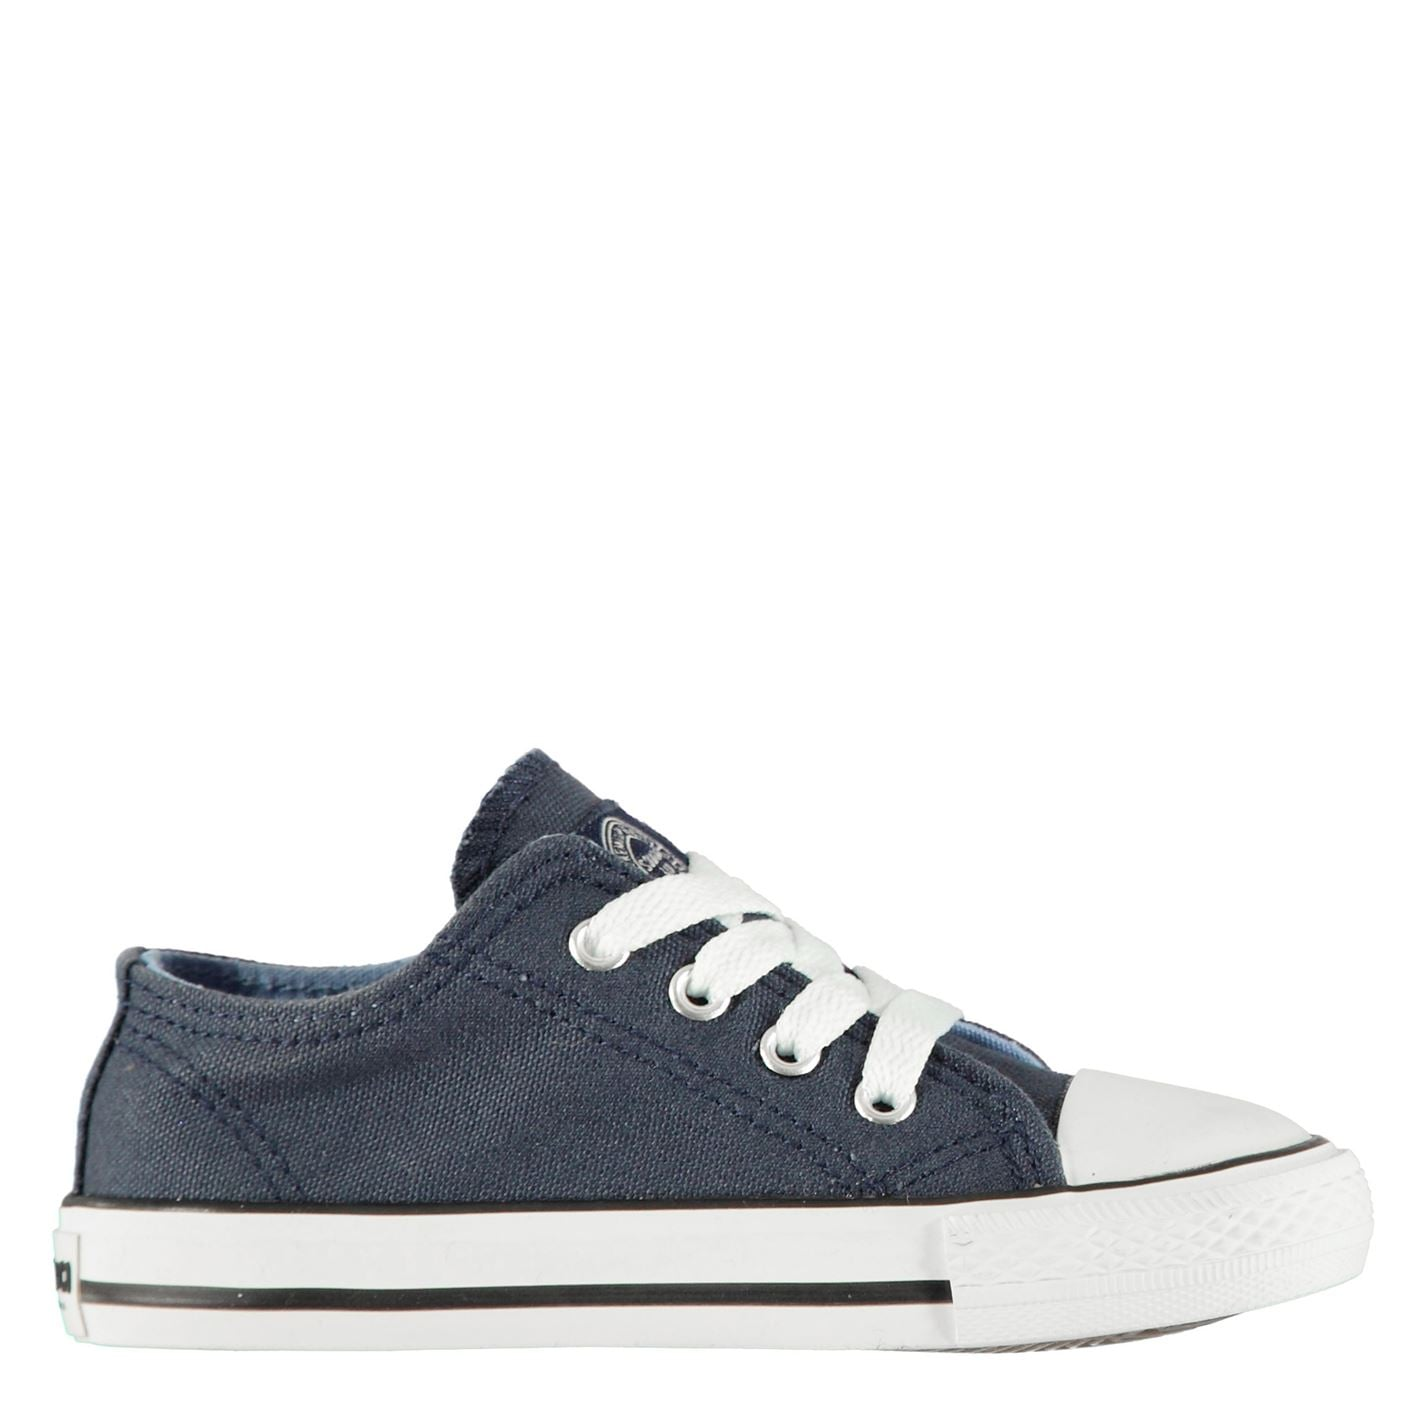 SoulCal Low Infants Canvas Shoes Navy